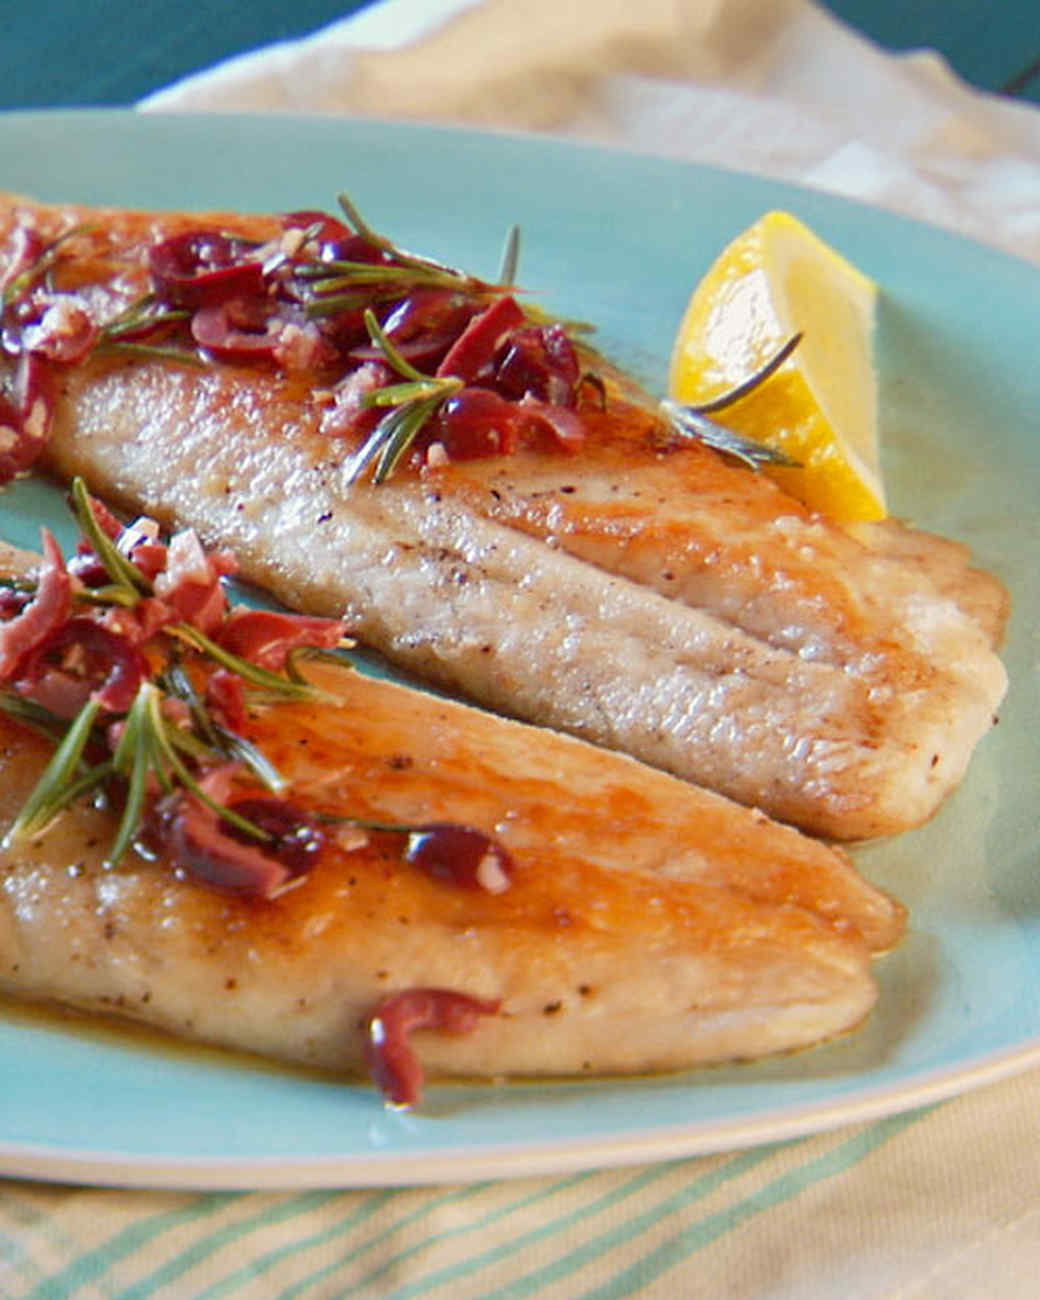 Fish fillet with rosemary recipe video martha stewart for Red fish fillet